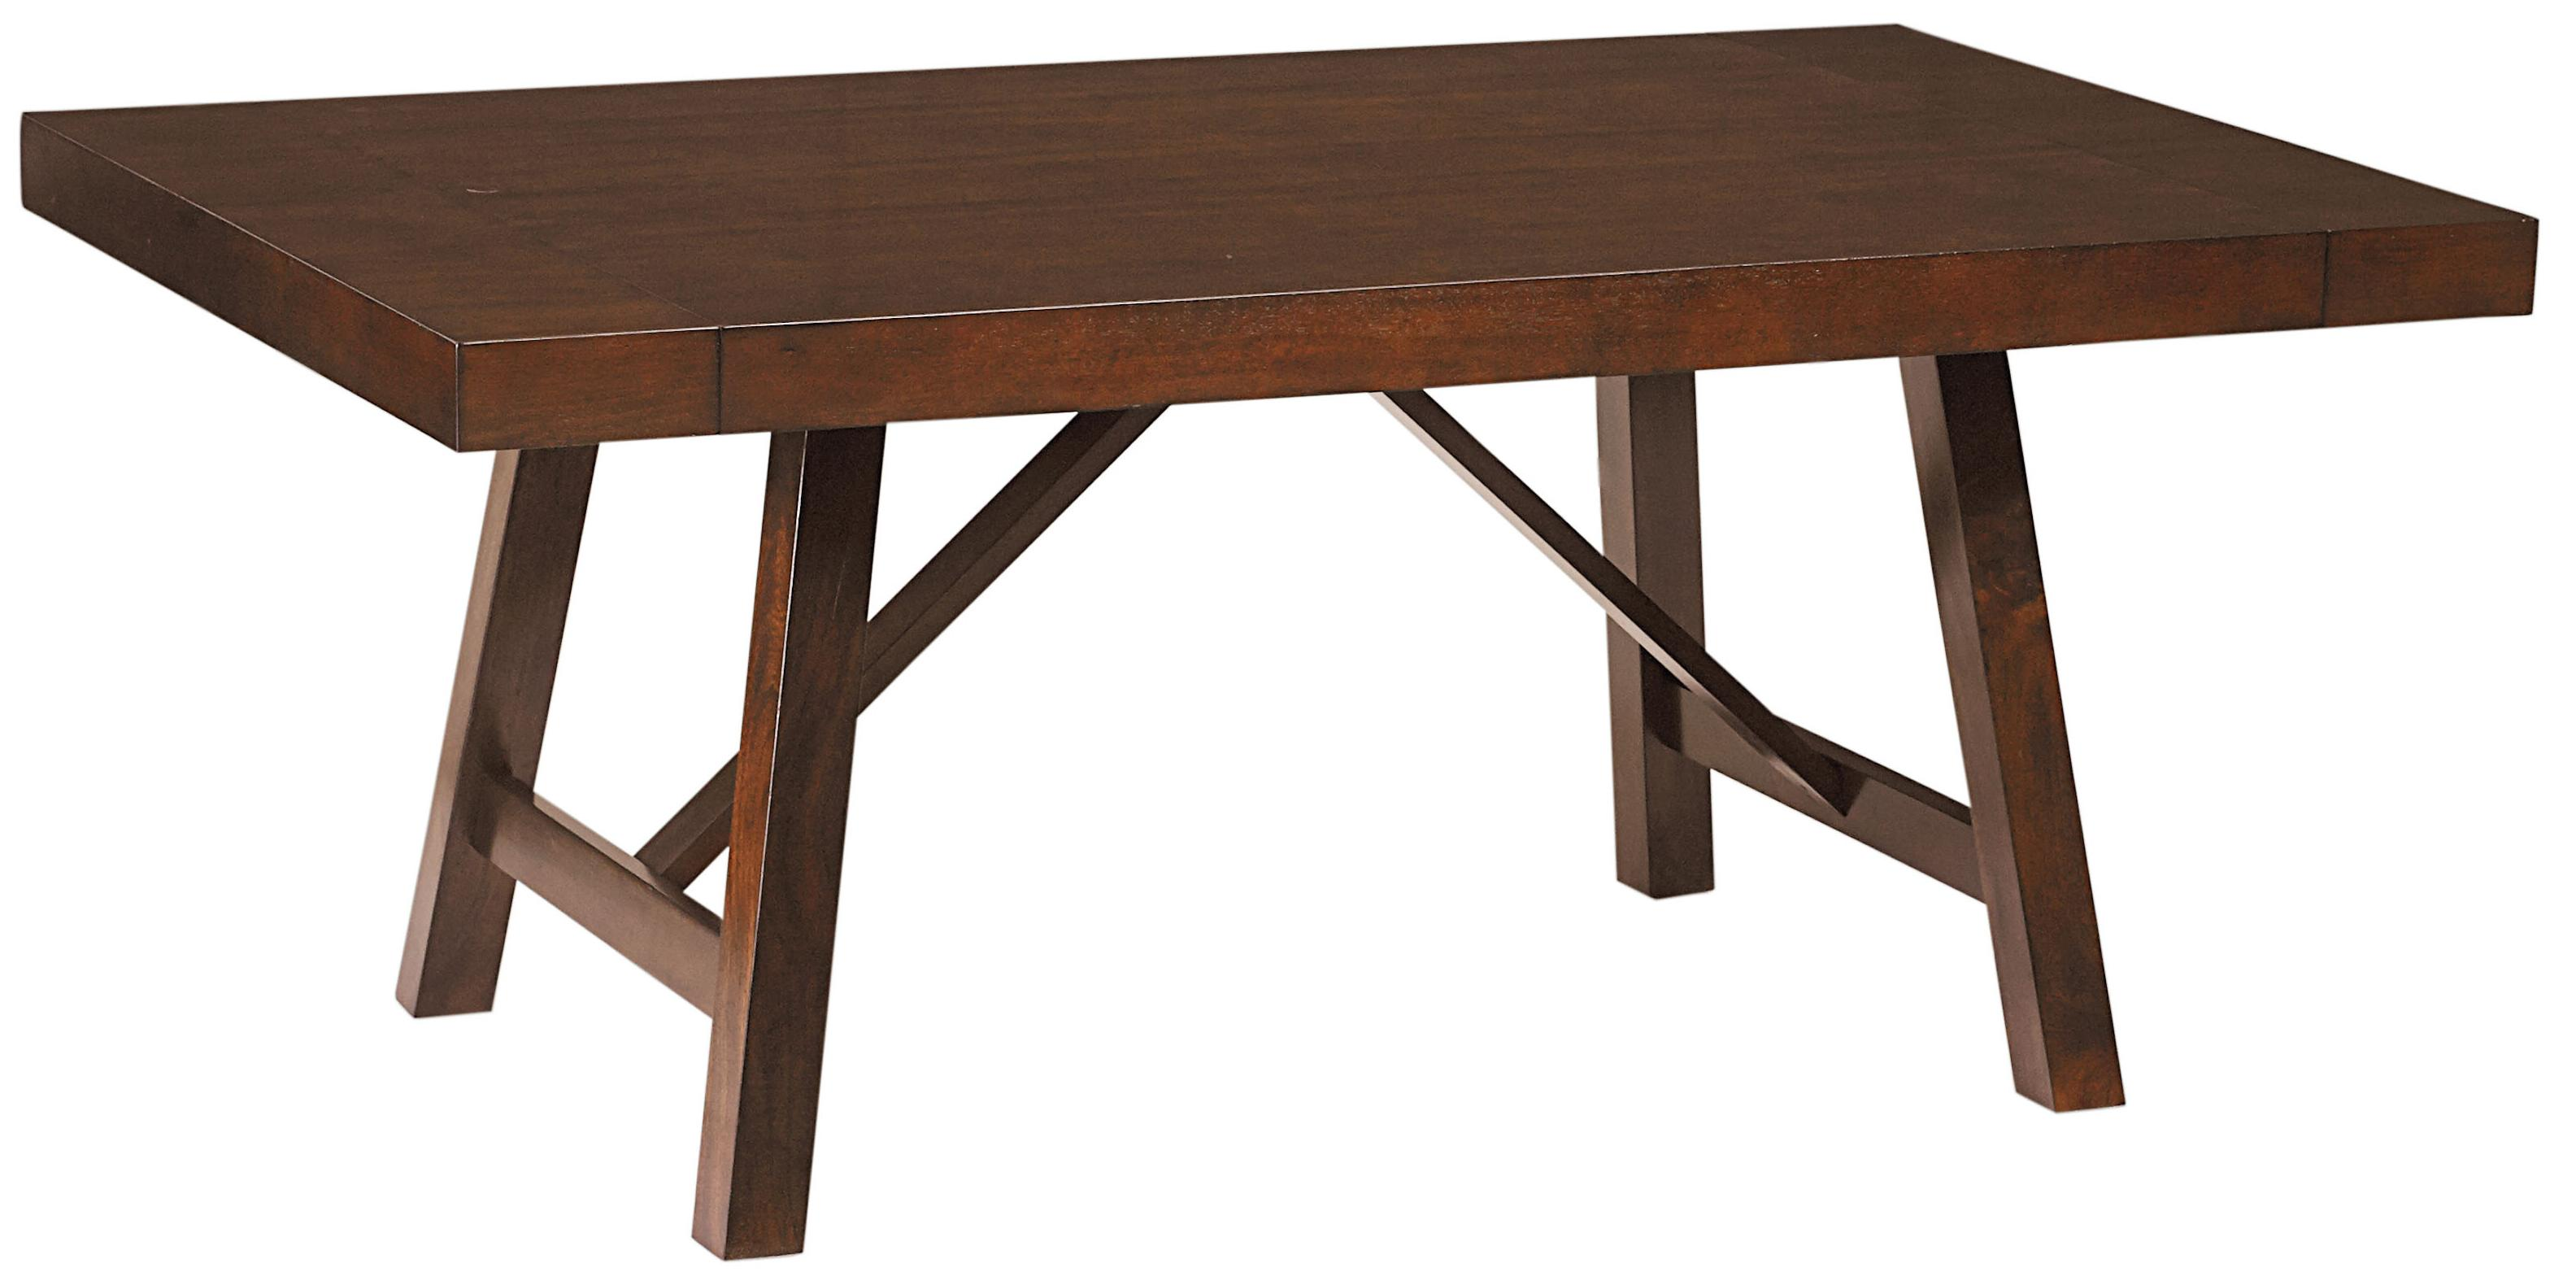 Standard furniture omaha brown 16181 trestle dining room for Dining table without chairs